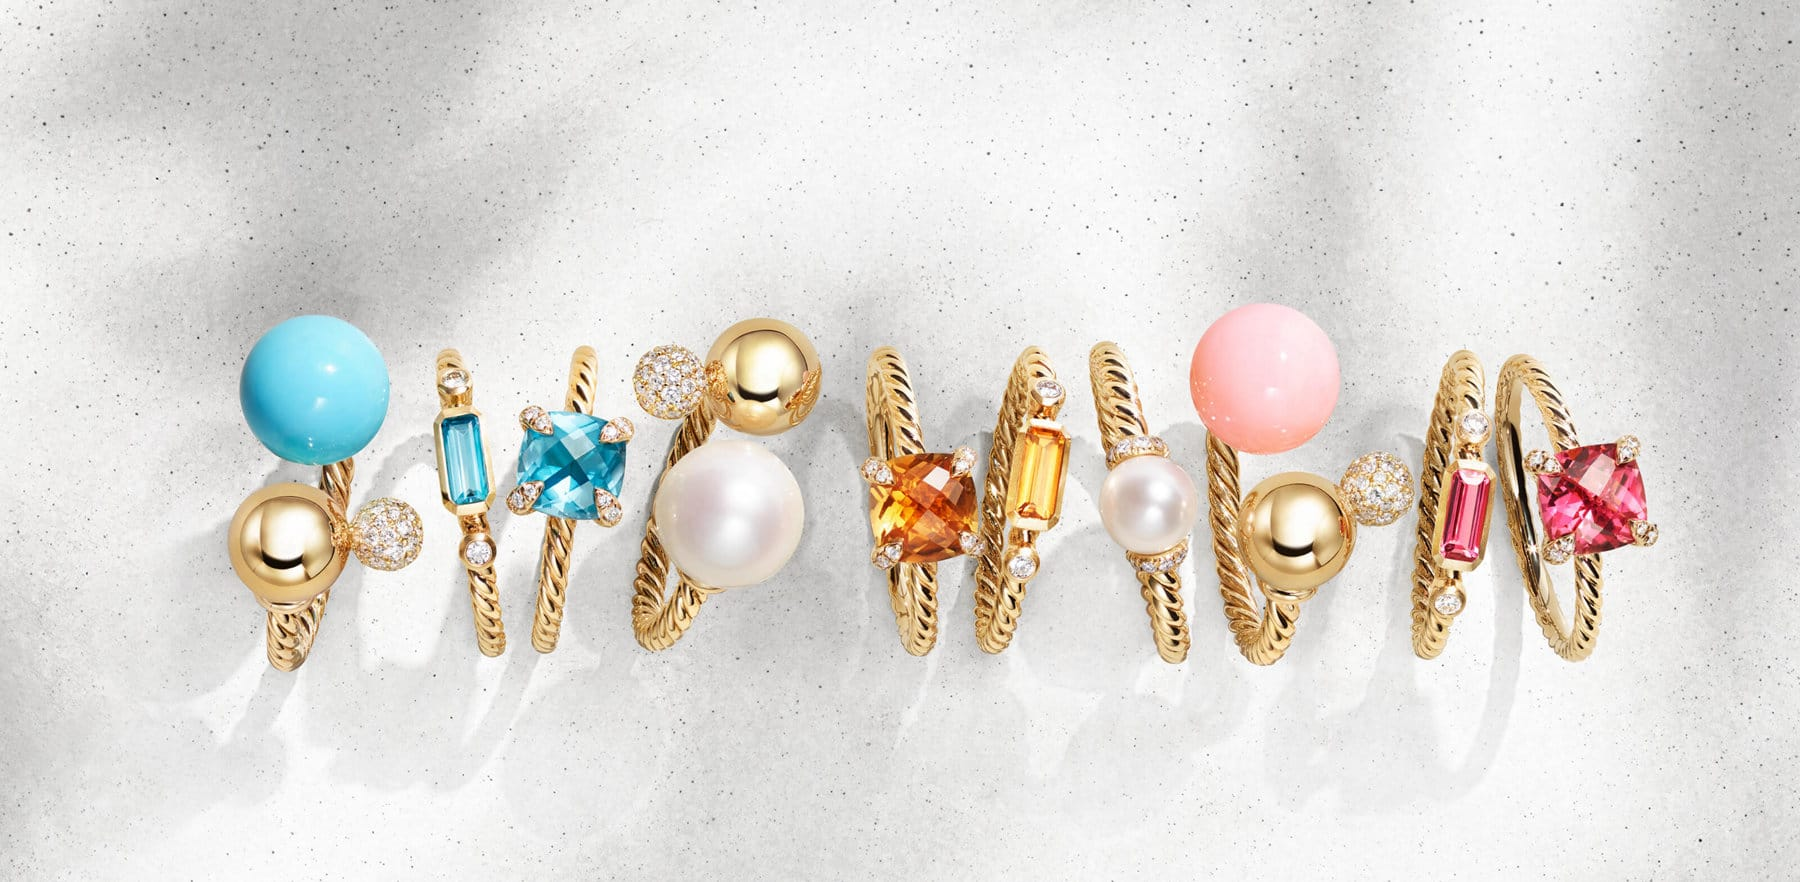 A chromatic horizontal stack of David Yurman Chatelaine, Novella and Solari rings in 18K yellow gold with white diamonds and a variety of colored gemstones, standing on top of and casting long shadows on a white textured stone. This photo is contrasted with a collage of a gold chains hanging over a white background near large colored gemstones including pearls, gold balls and pink moonstone.